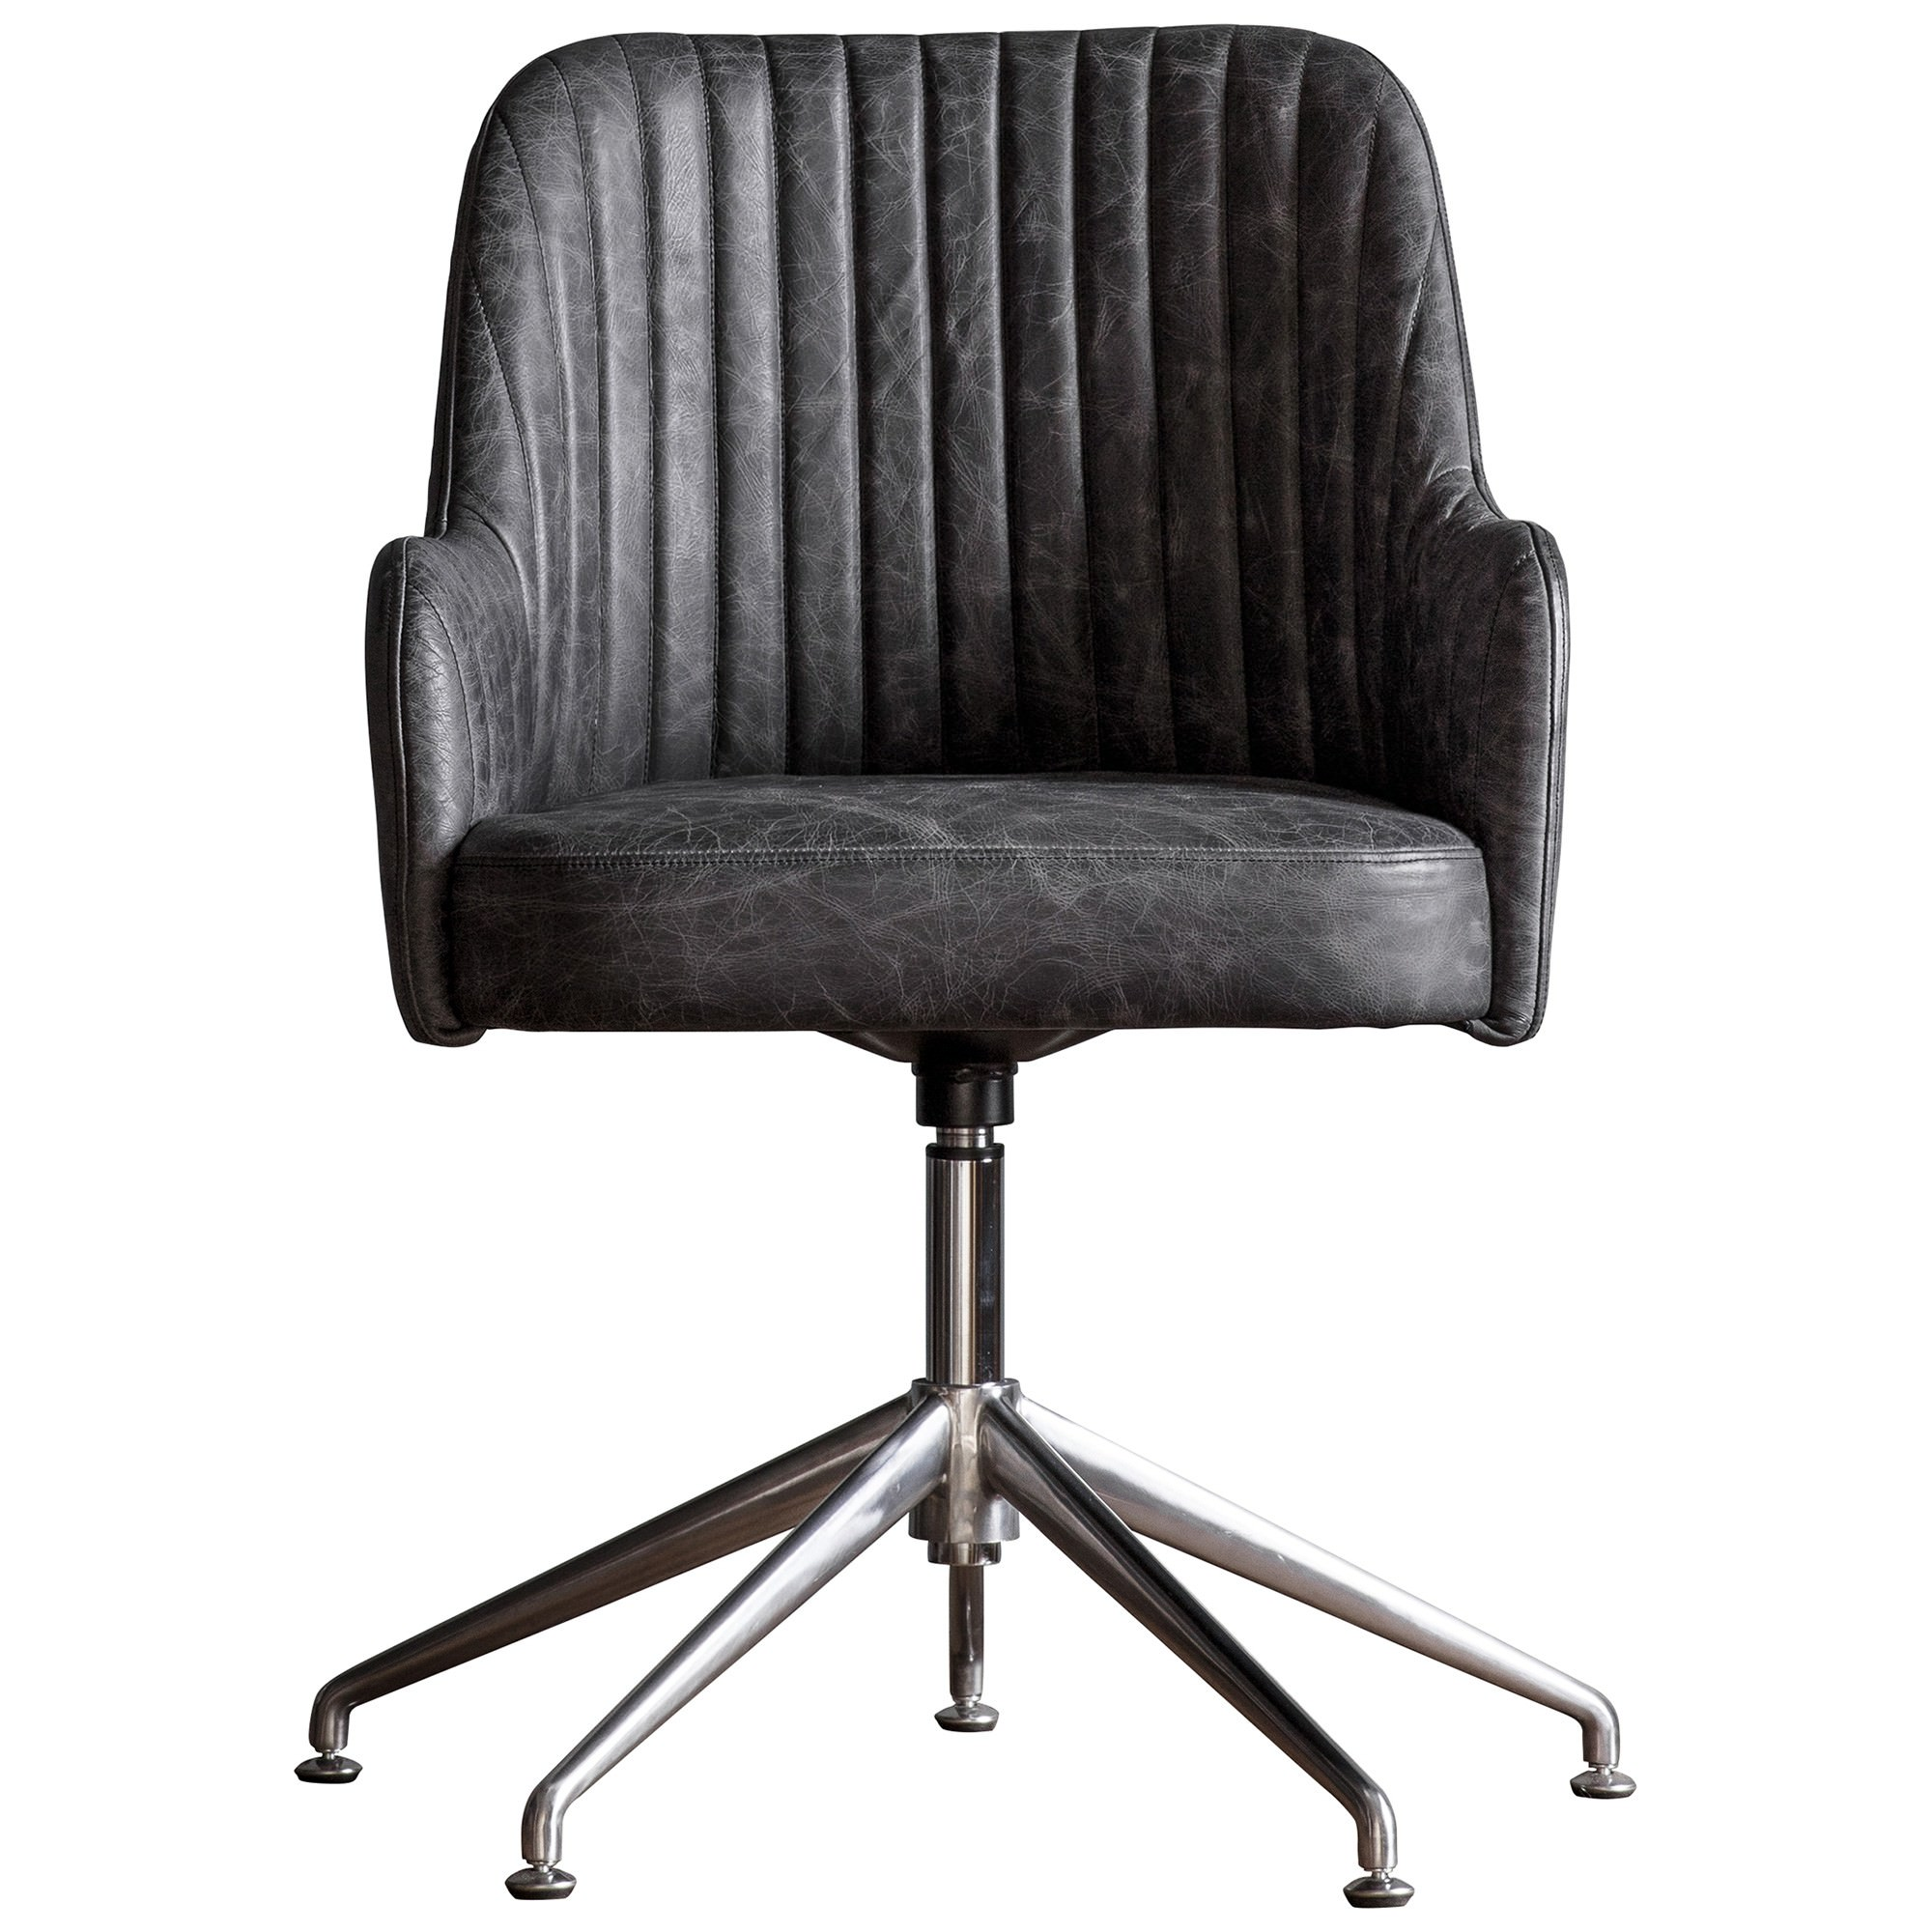 Donisi Leather Swivel Office Chair, Antique Ebony